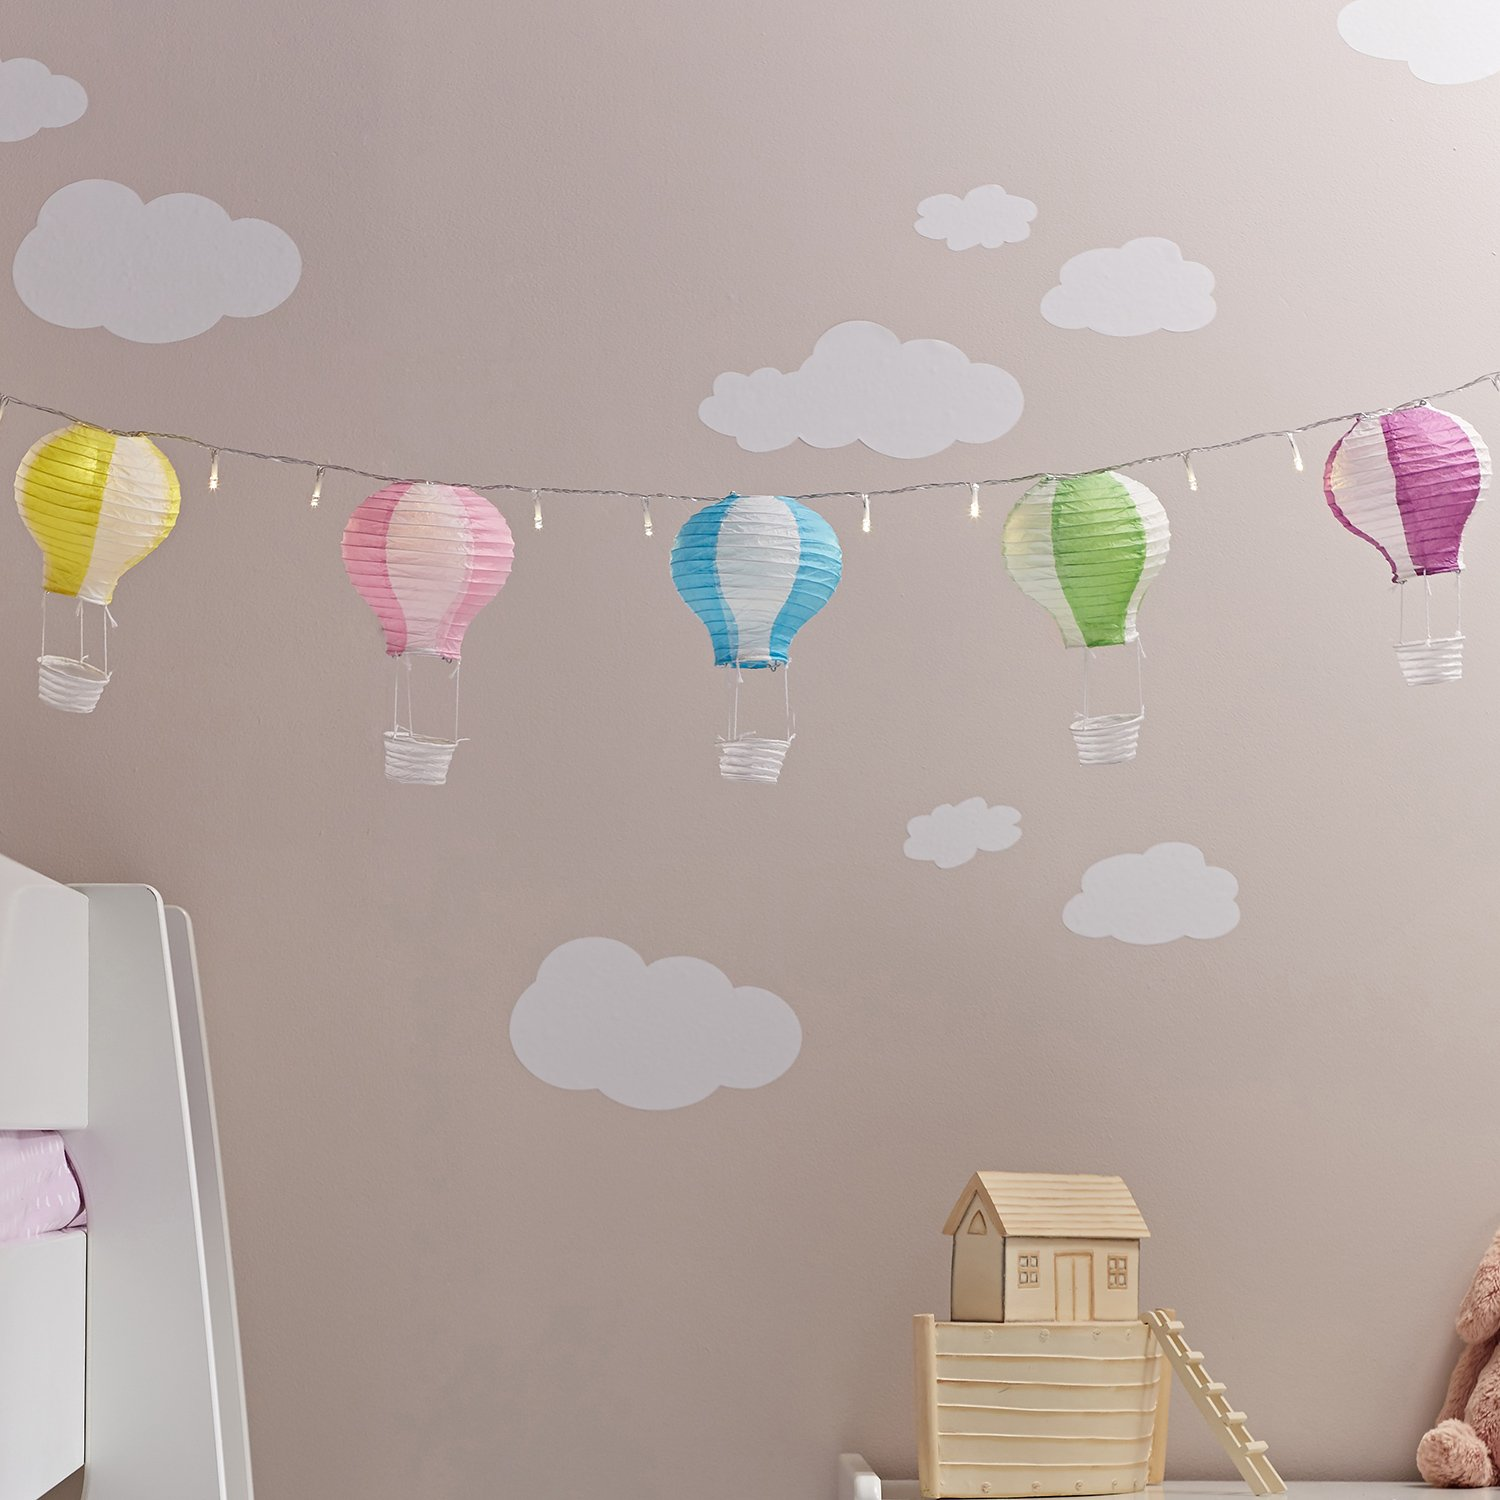 Heißluftballon Deko Kinderzimmer Deko Lights4fun: Amazon.de: Küche ... | {Deko für kinderzimmer 38}